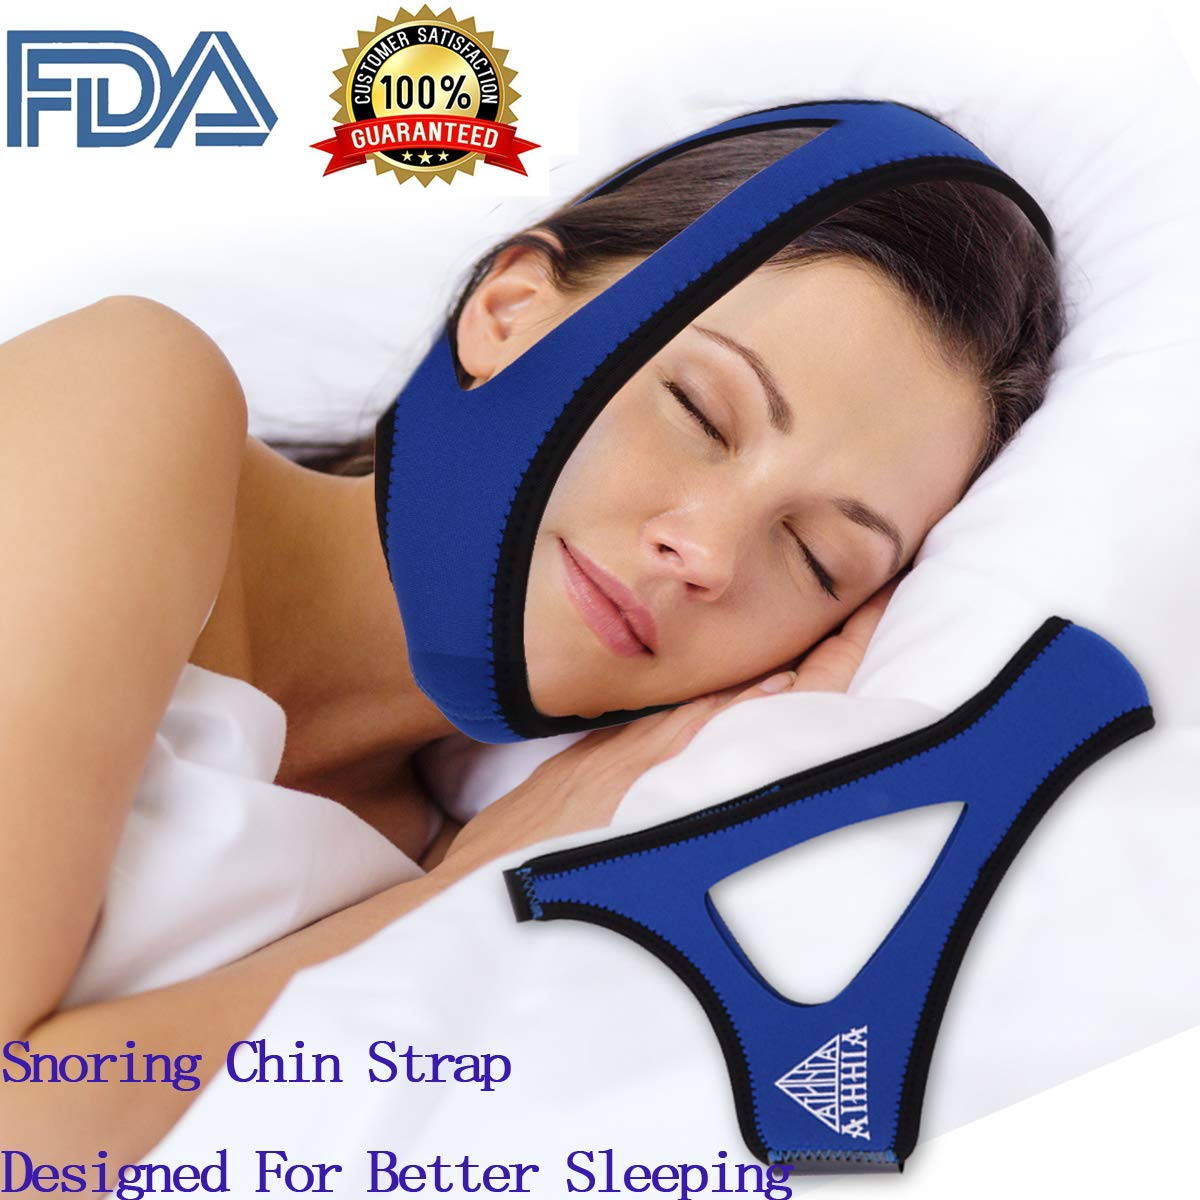 Anti Snoring Solution Chin Strap - Adjustable Snore Stopper,Anti Snoring Devices to Stop Snoring - Natural & Comfortable Sleep Aid for Women & Men - Designed as Snoring Remedies (Blue) by AIHHIA